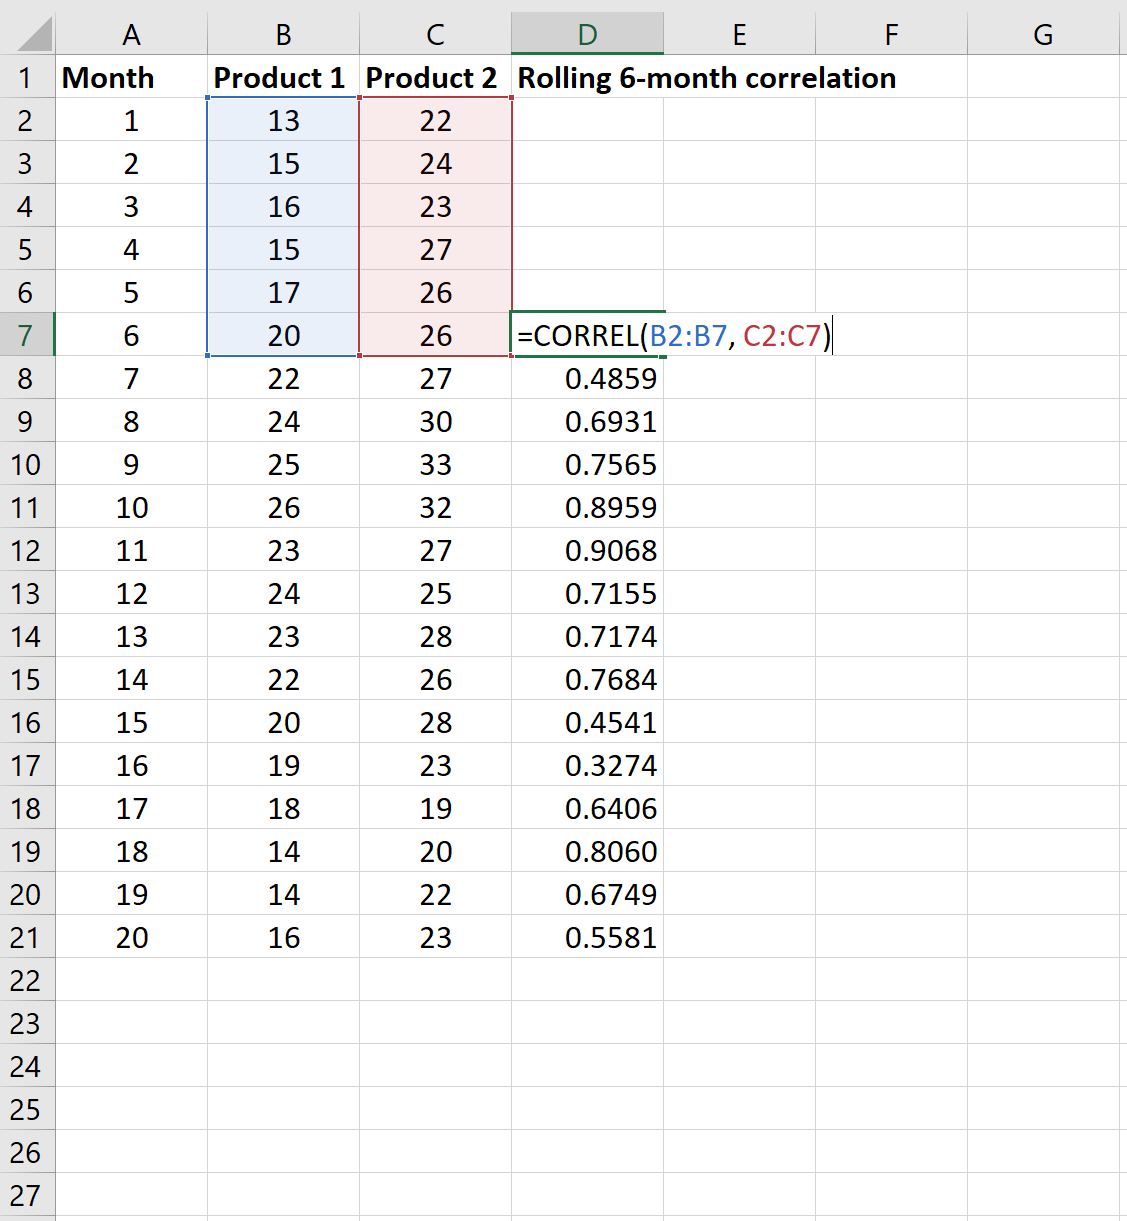 6-month rolling correlation in Excel